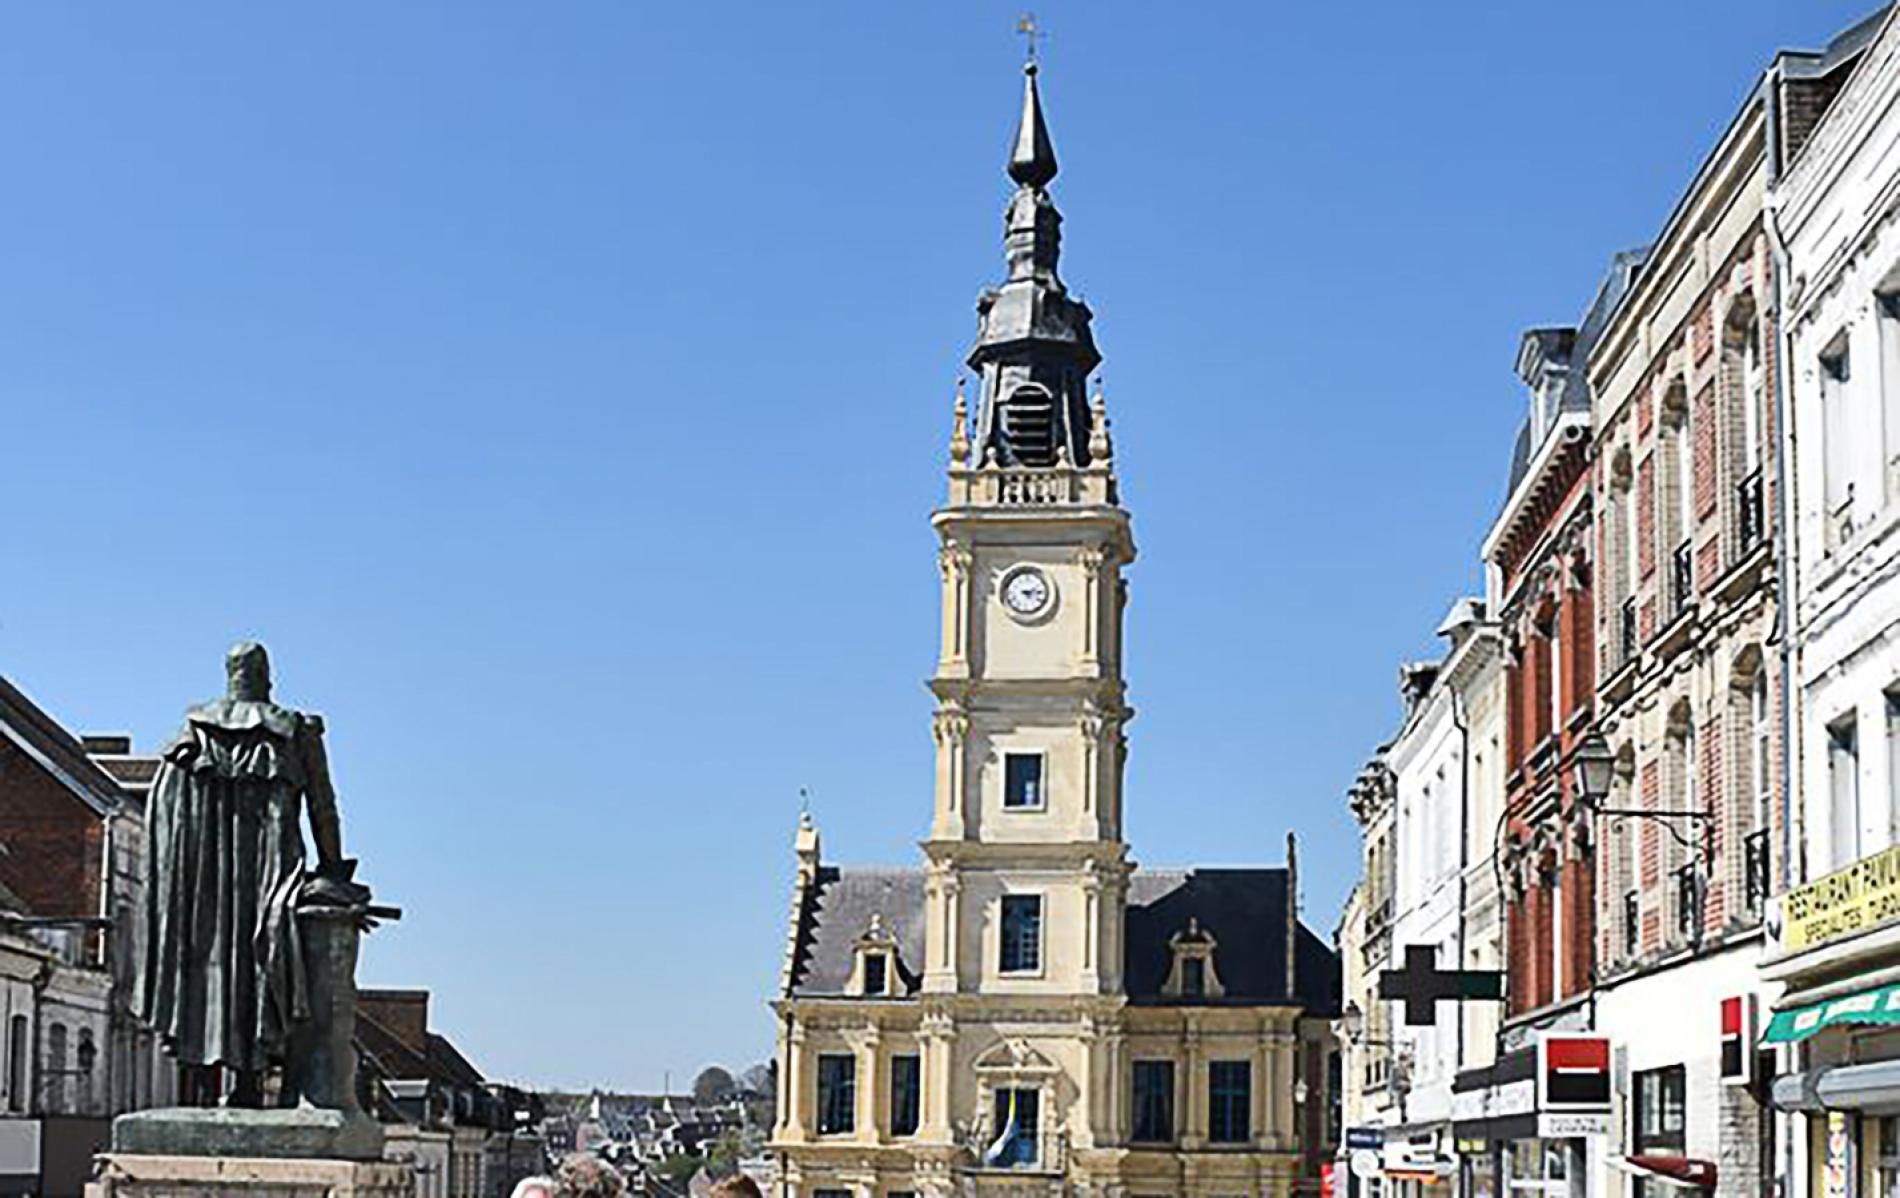 The Belfry at Le Cateau